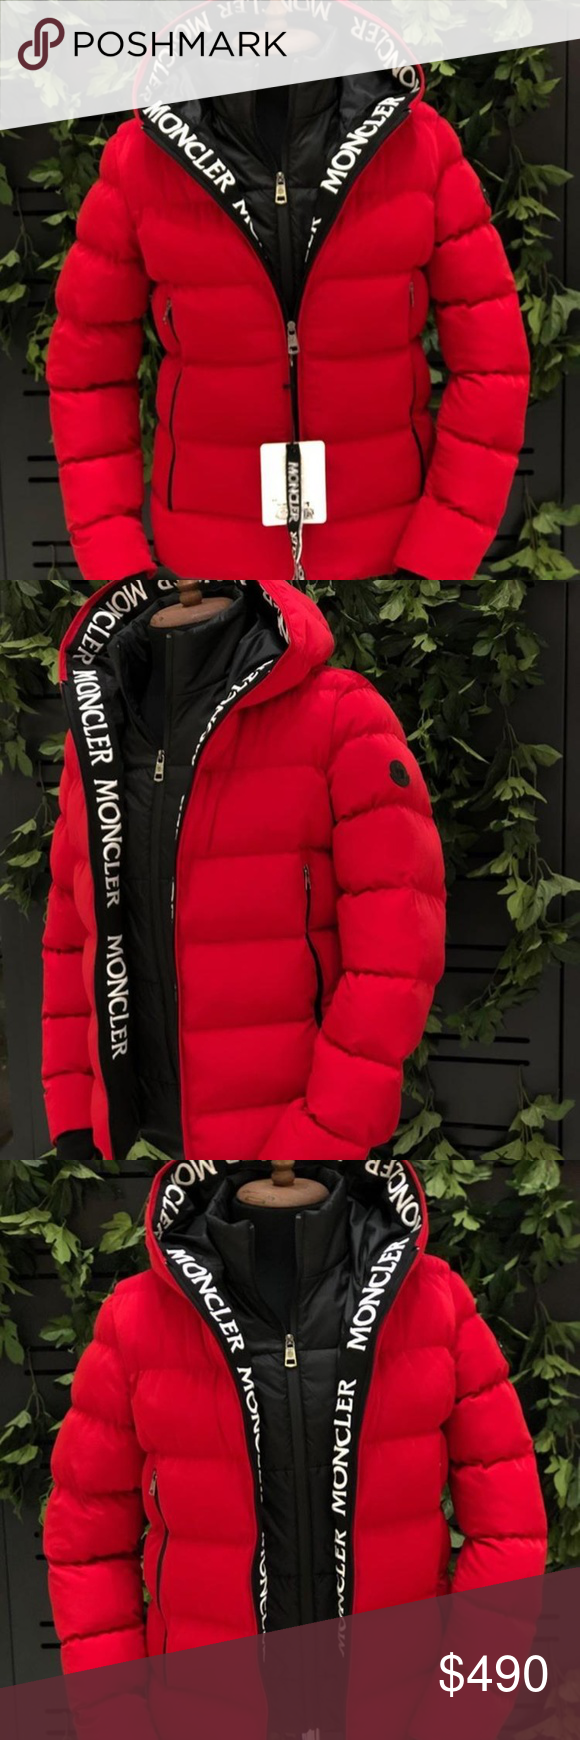 Moncler Men's Red Puffer Jacket NWT in 2020 Red puffer